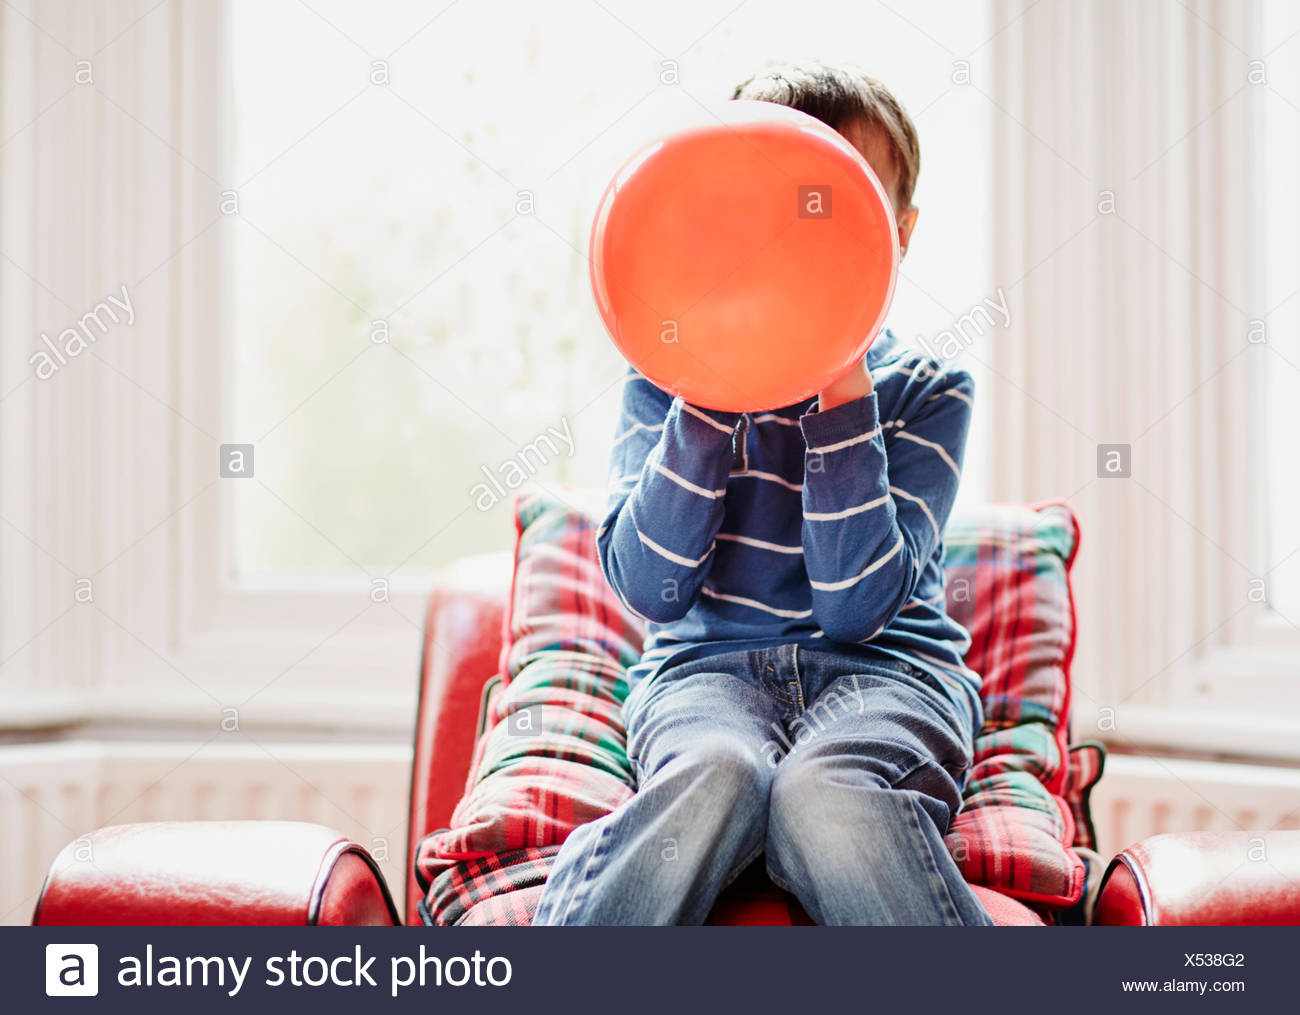 Young boy holding balloon en face de visage Banque D'Images